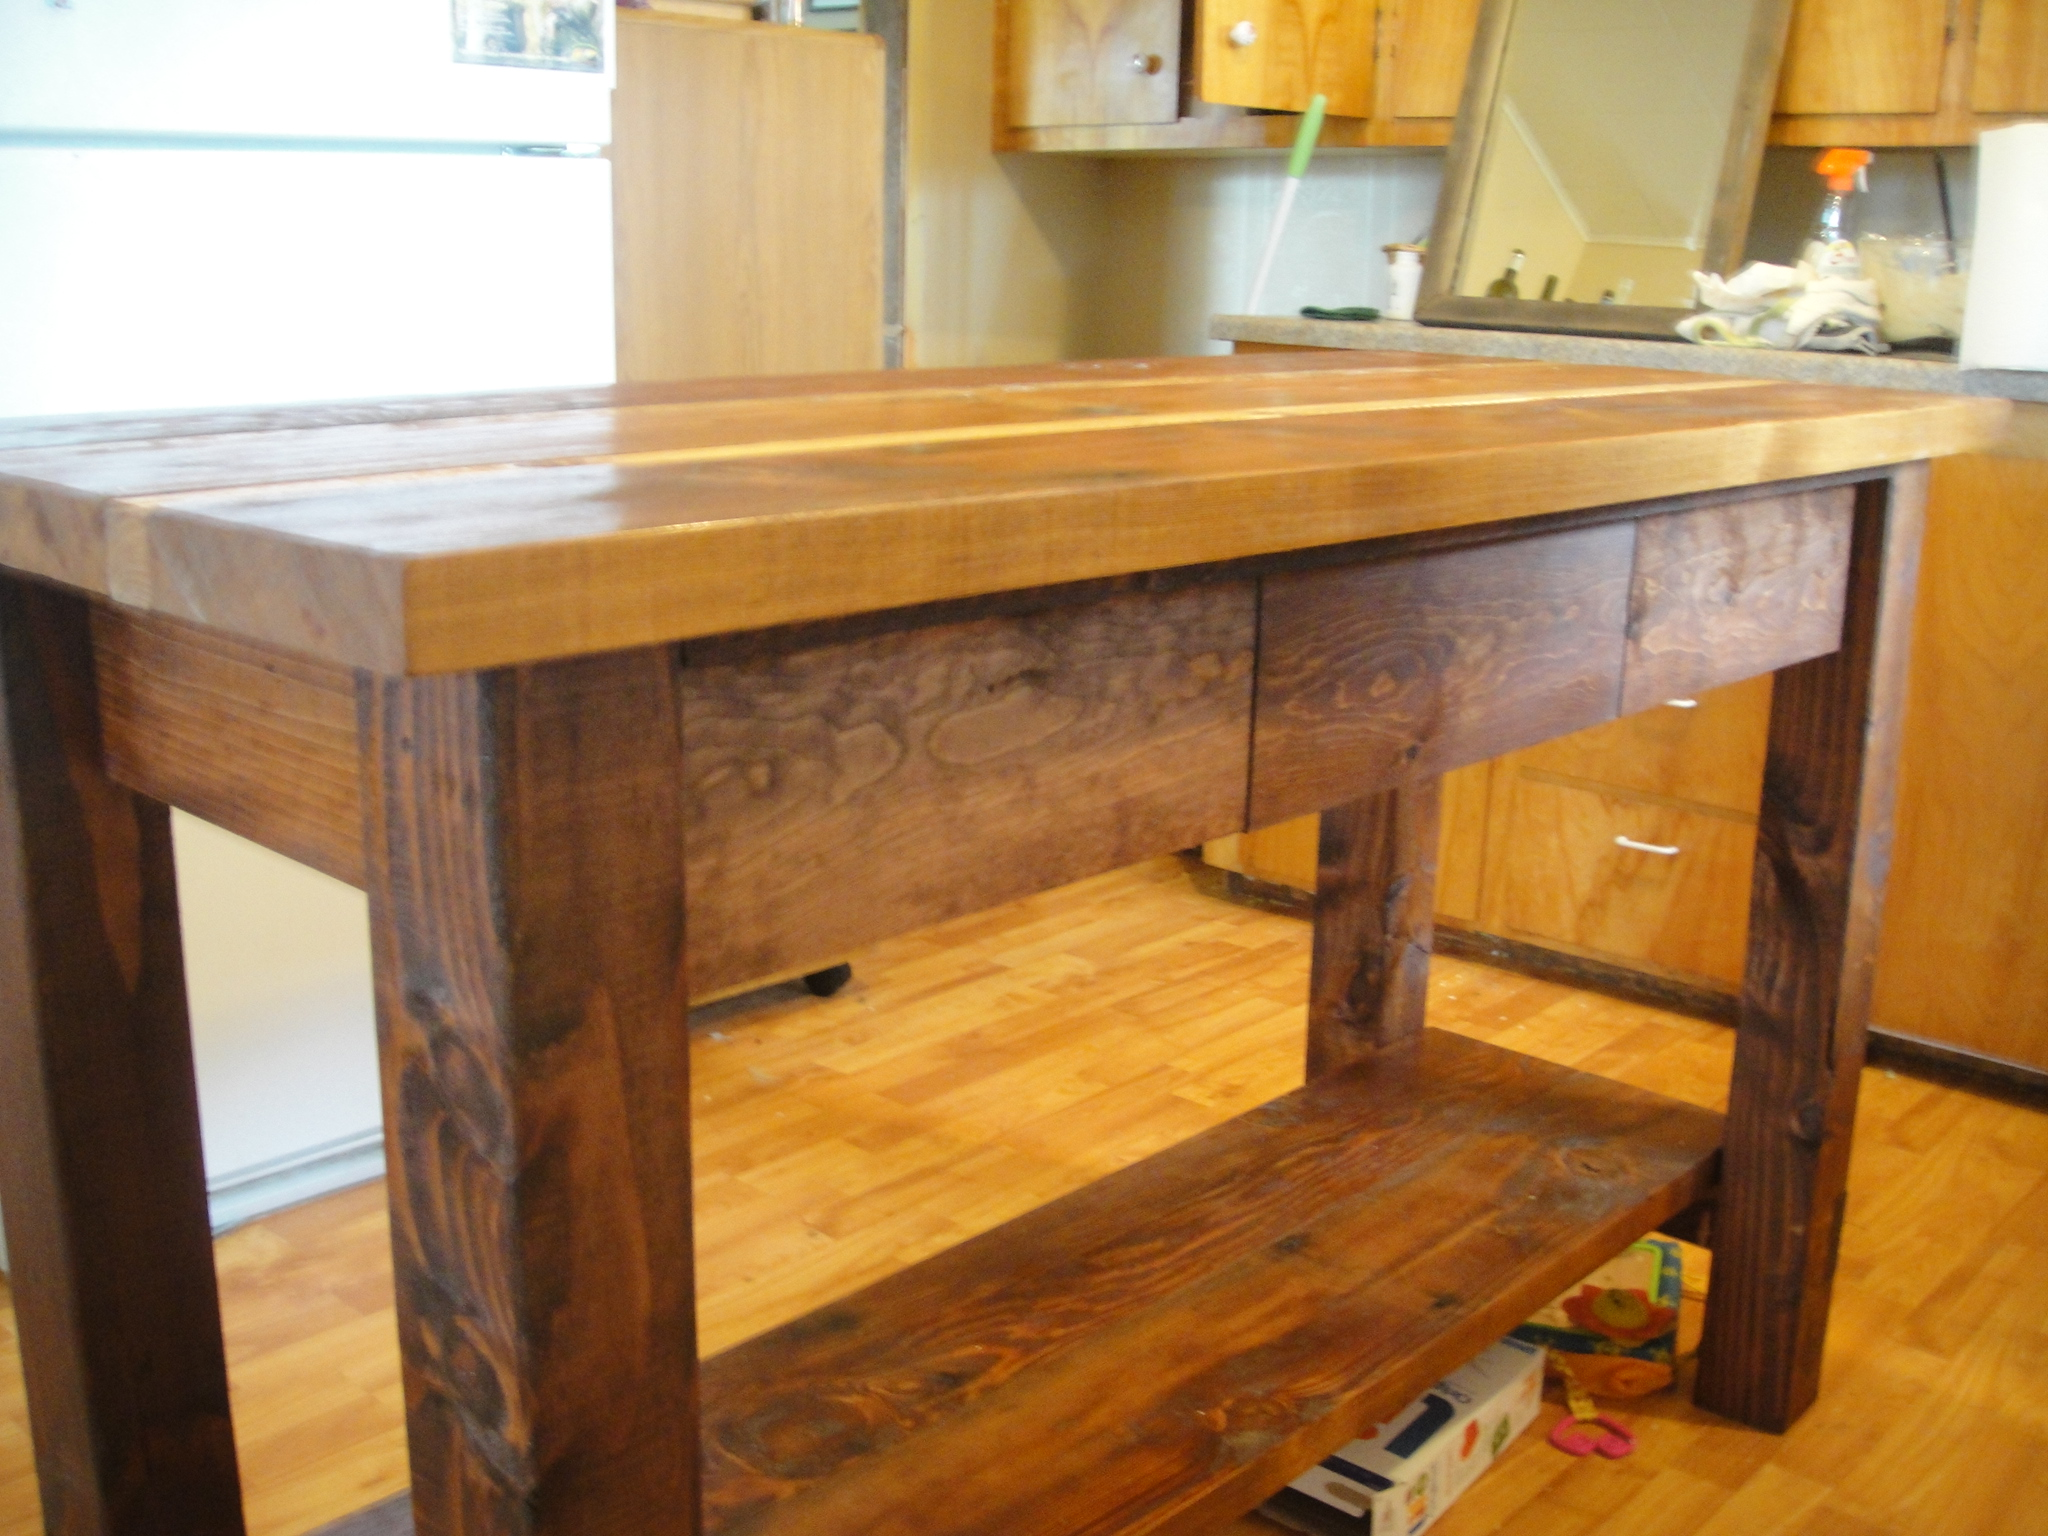 Kitchen Islands Plans Ana White Kitchen Island From Reclaimed Wood Diy  Projects